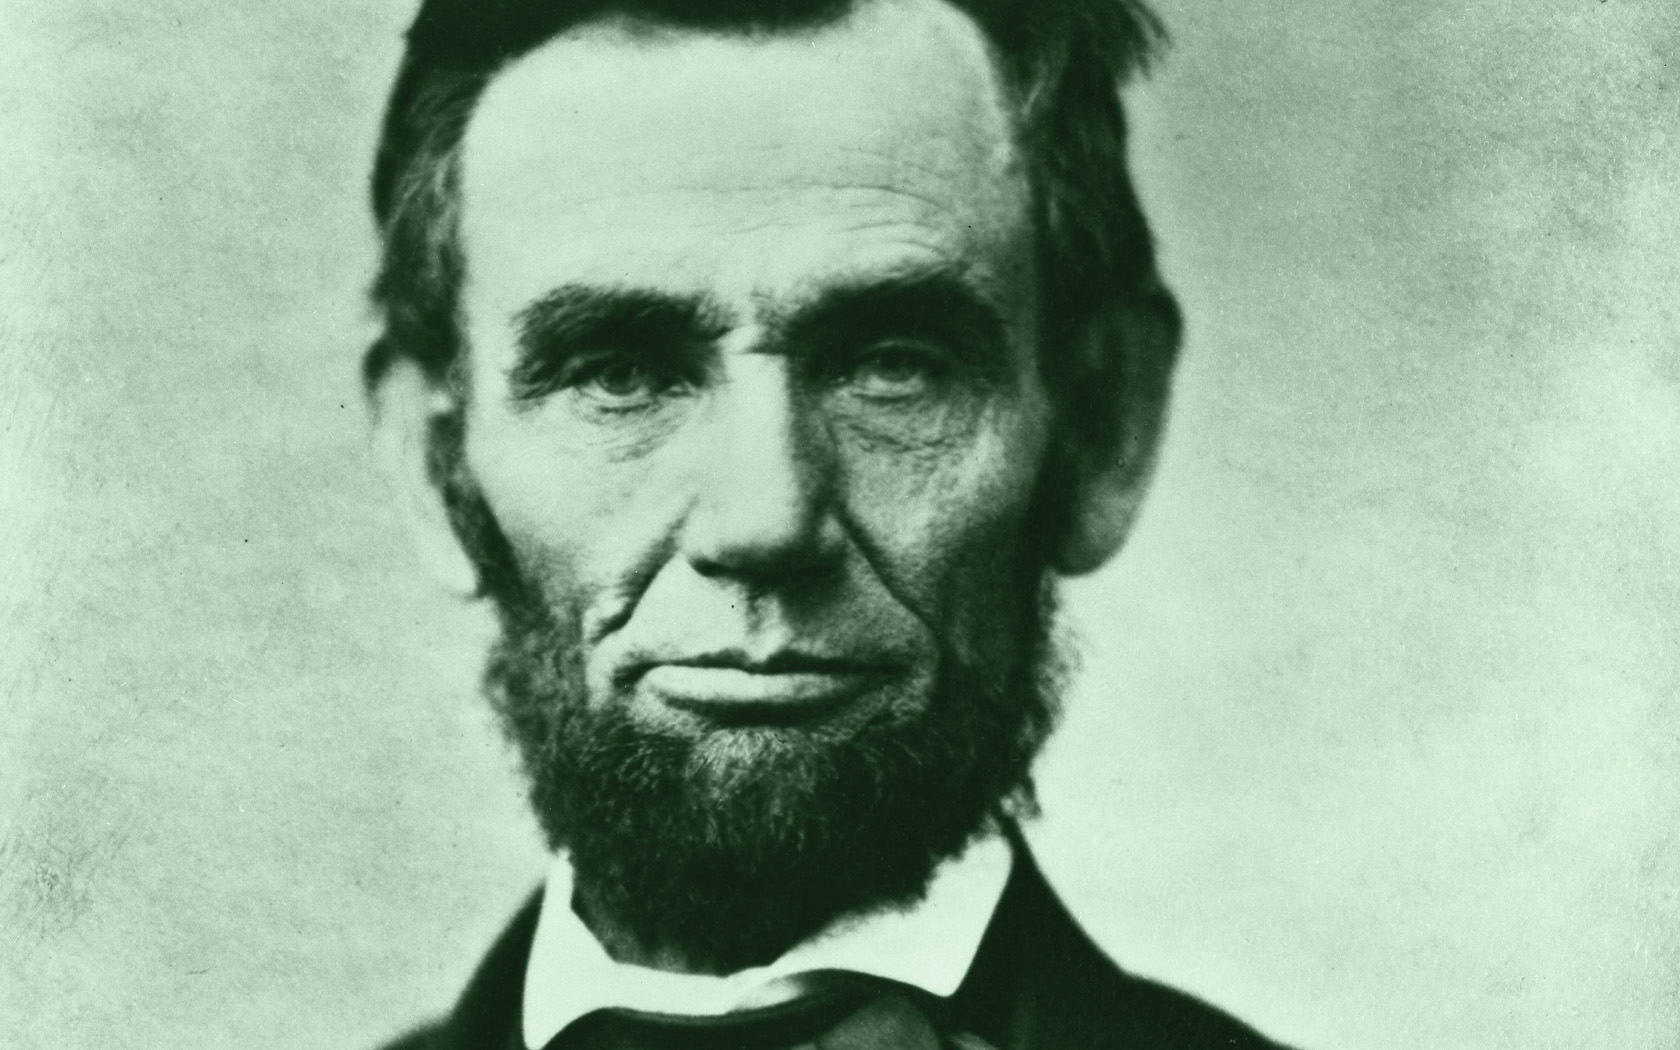 Download Wallpapers Download 1024x768 abraham lincoln 1024x768